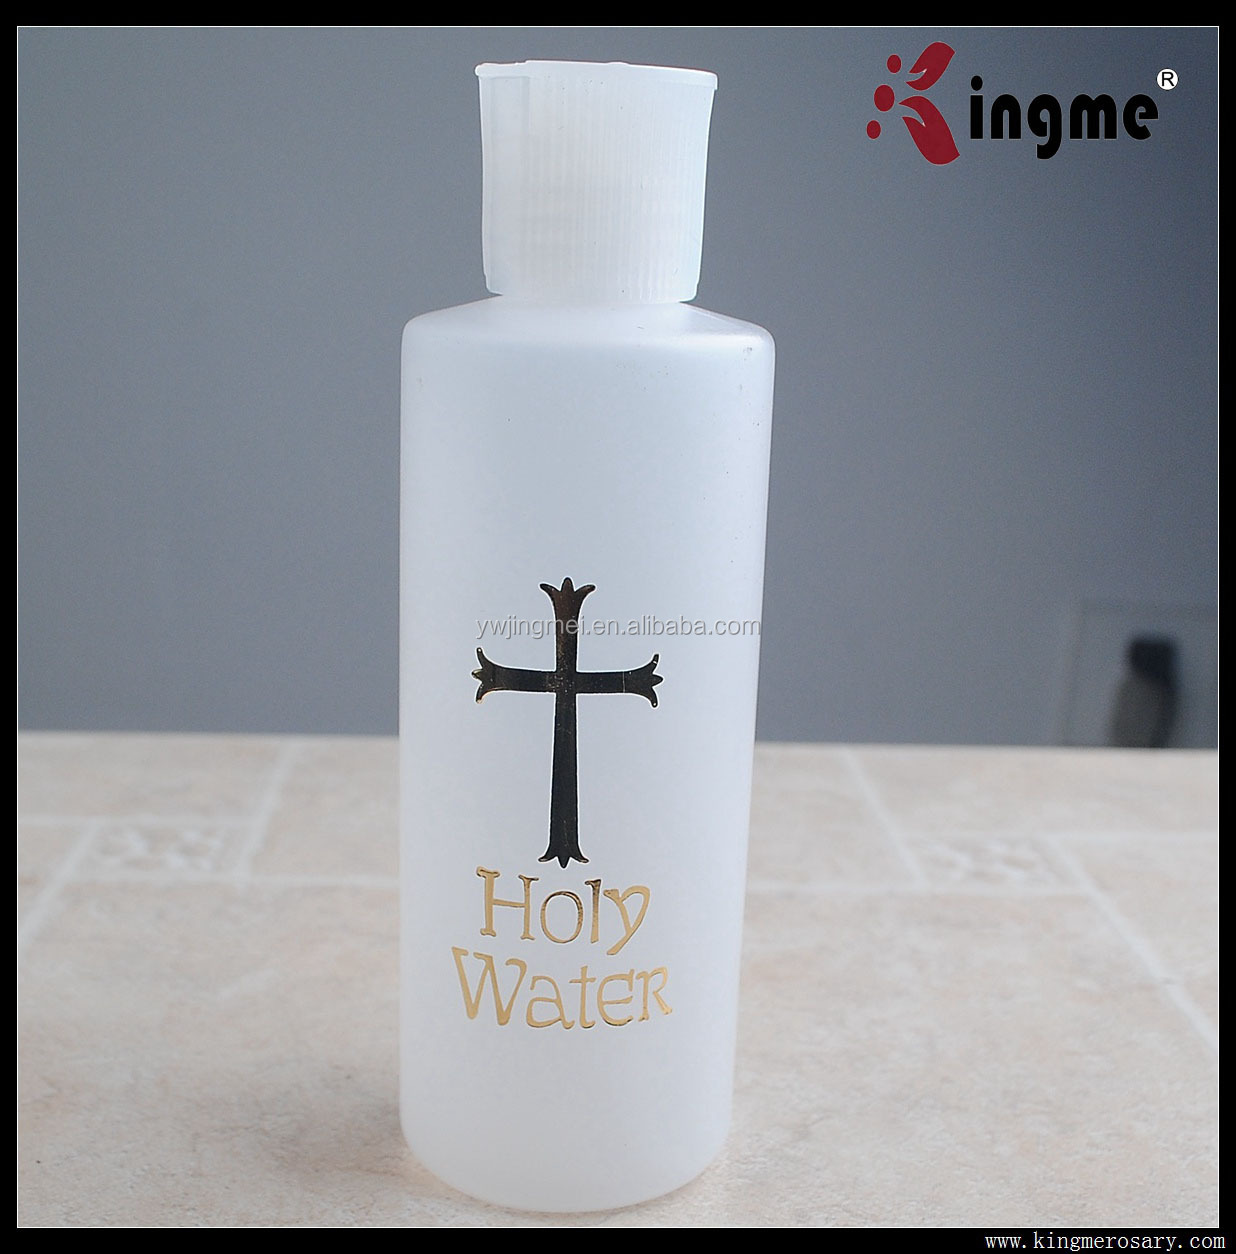 150ML Plastic Holy Water Bottle with Hot Gold Printed with Spout Cap